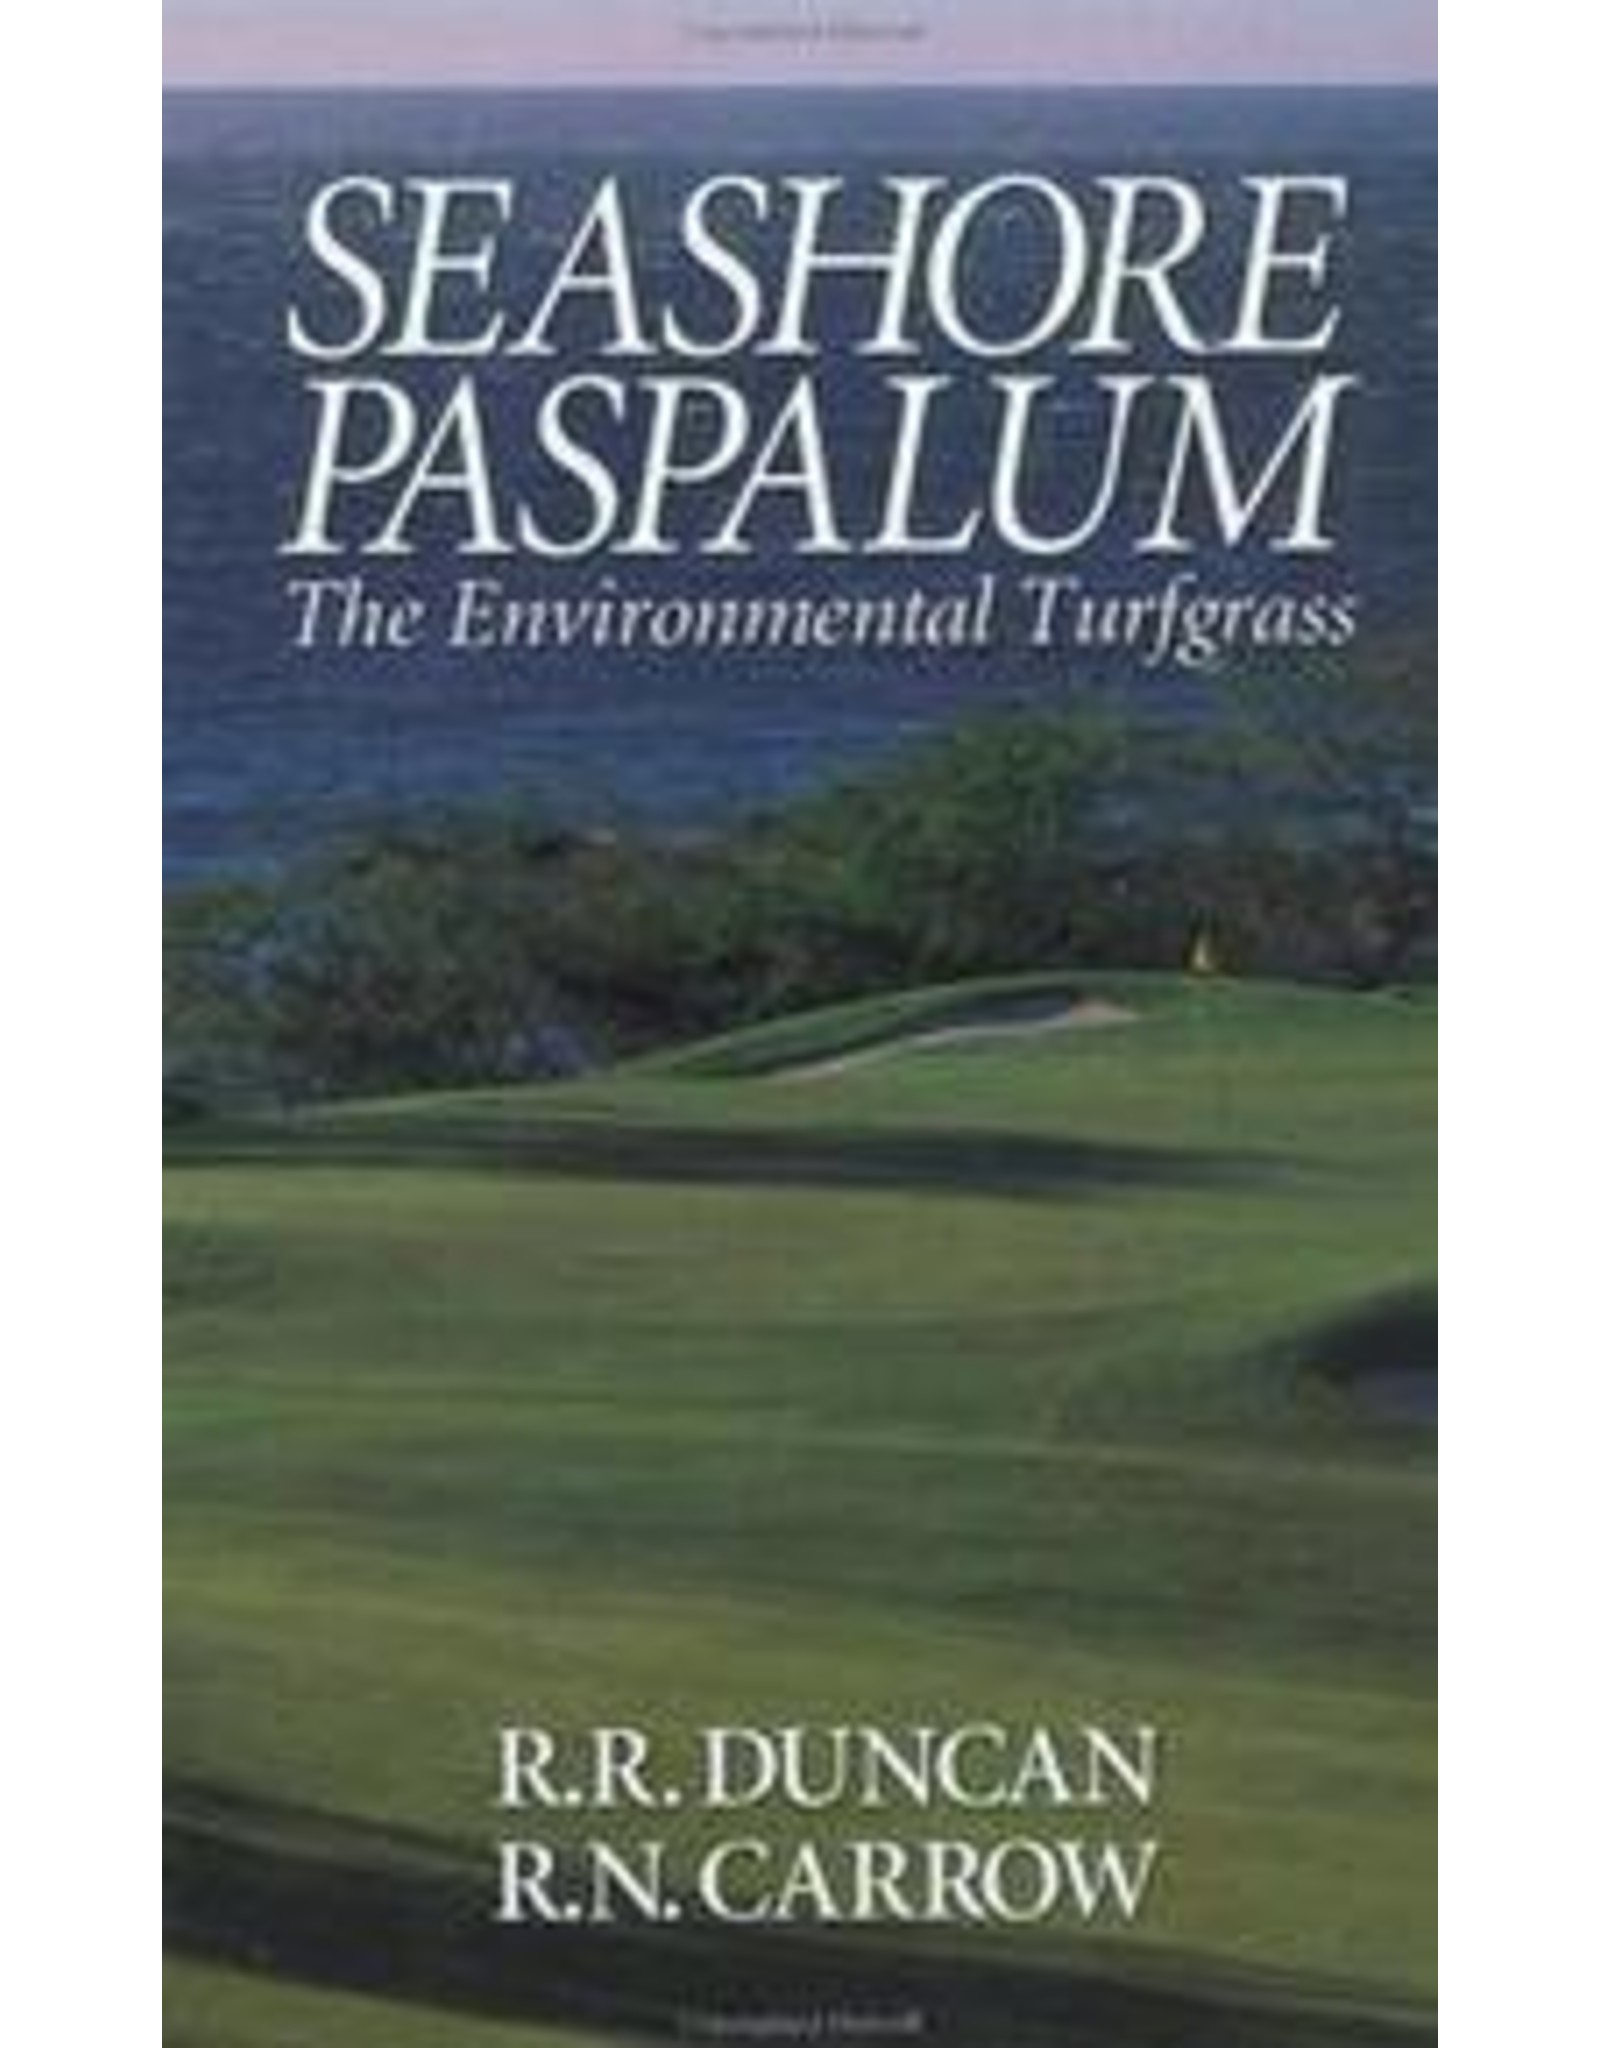 Seashore Paspalum: The Environmental Turfgrass